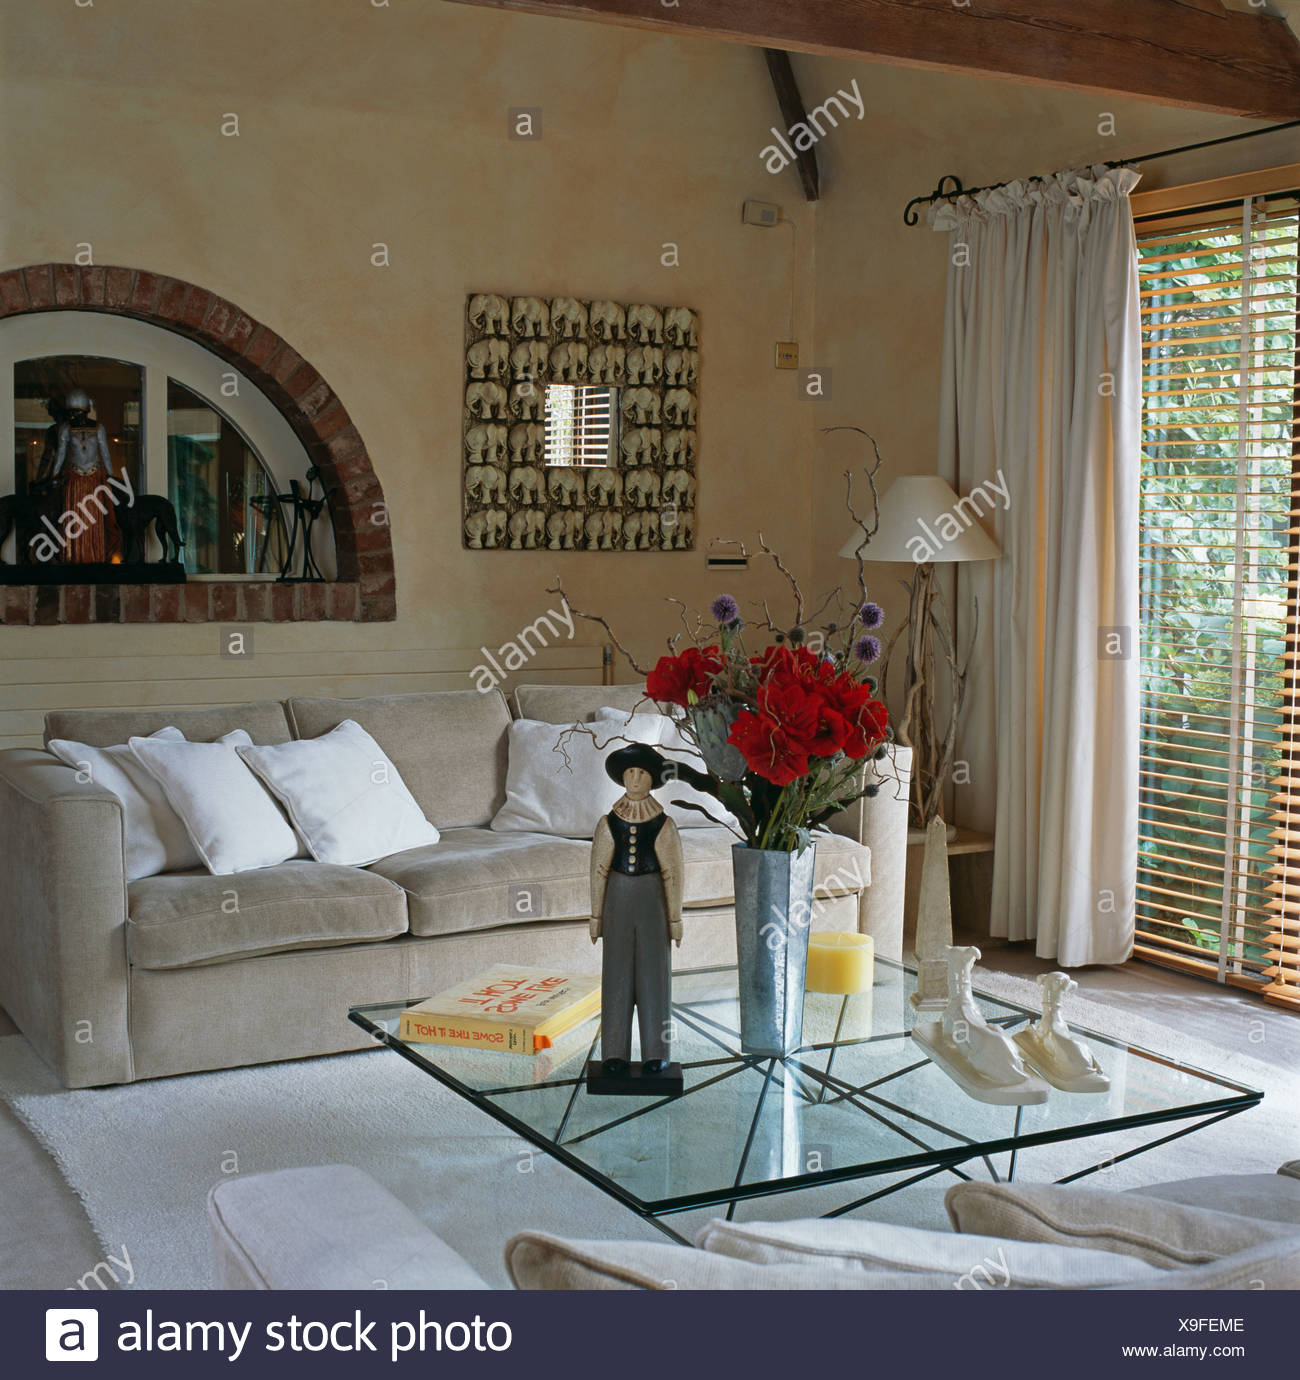 https www alamy com wooden figure and vase of red roses on glass coffee table in modern living room with gray velour sofa and cream curtains image281238622 html